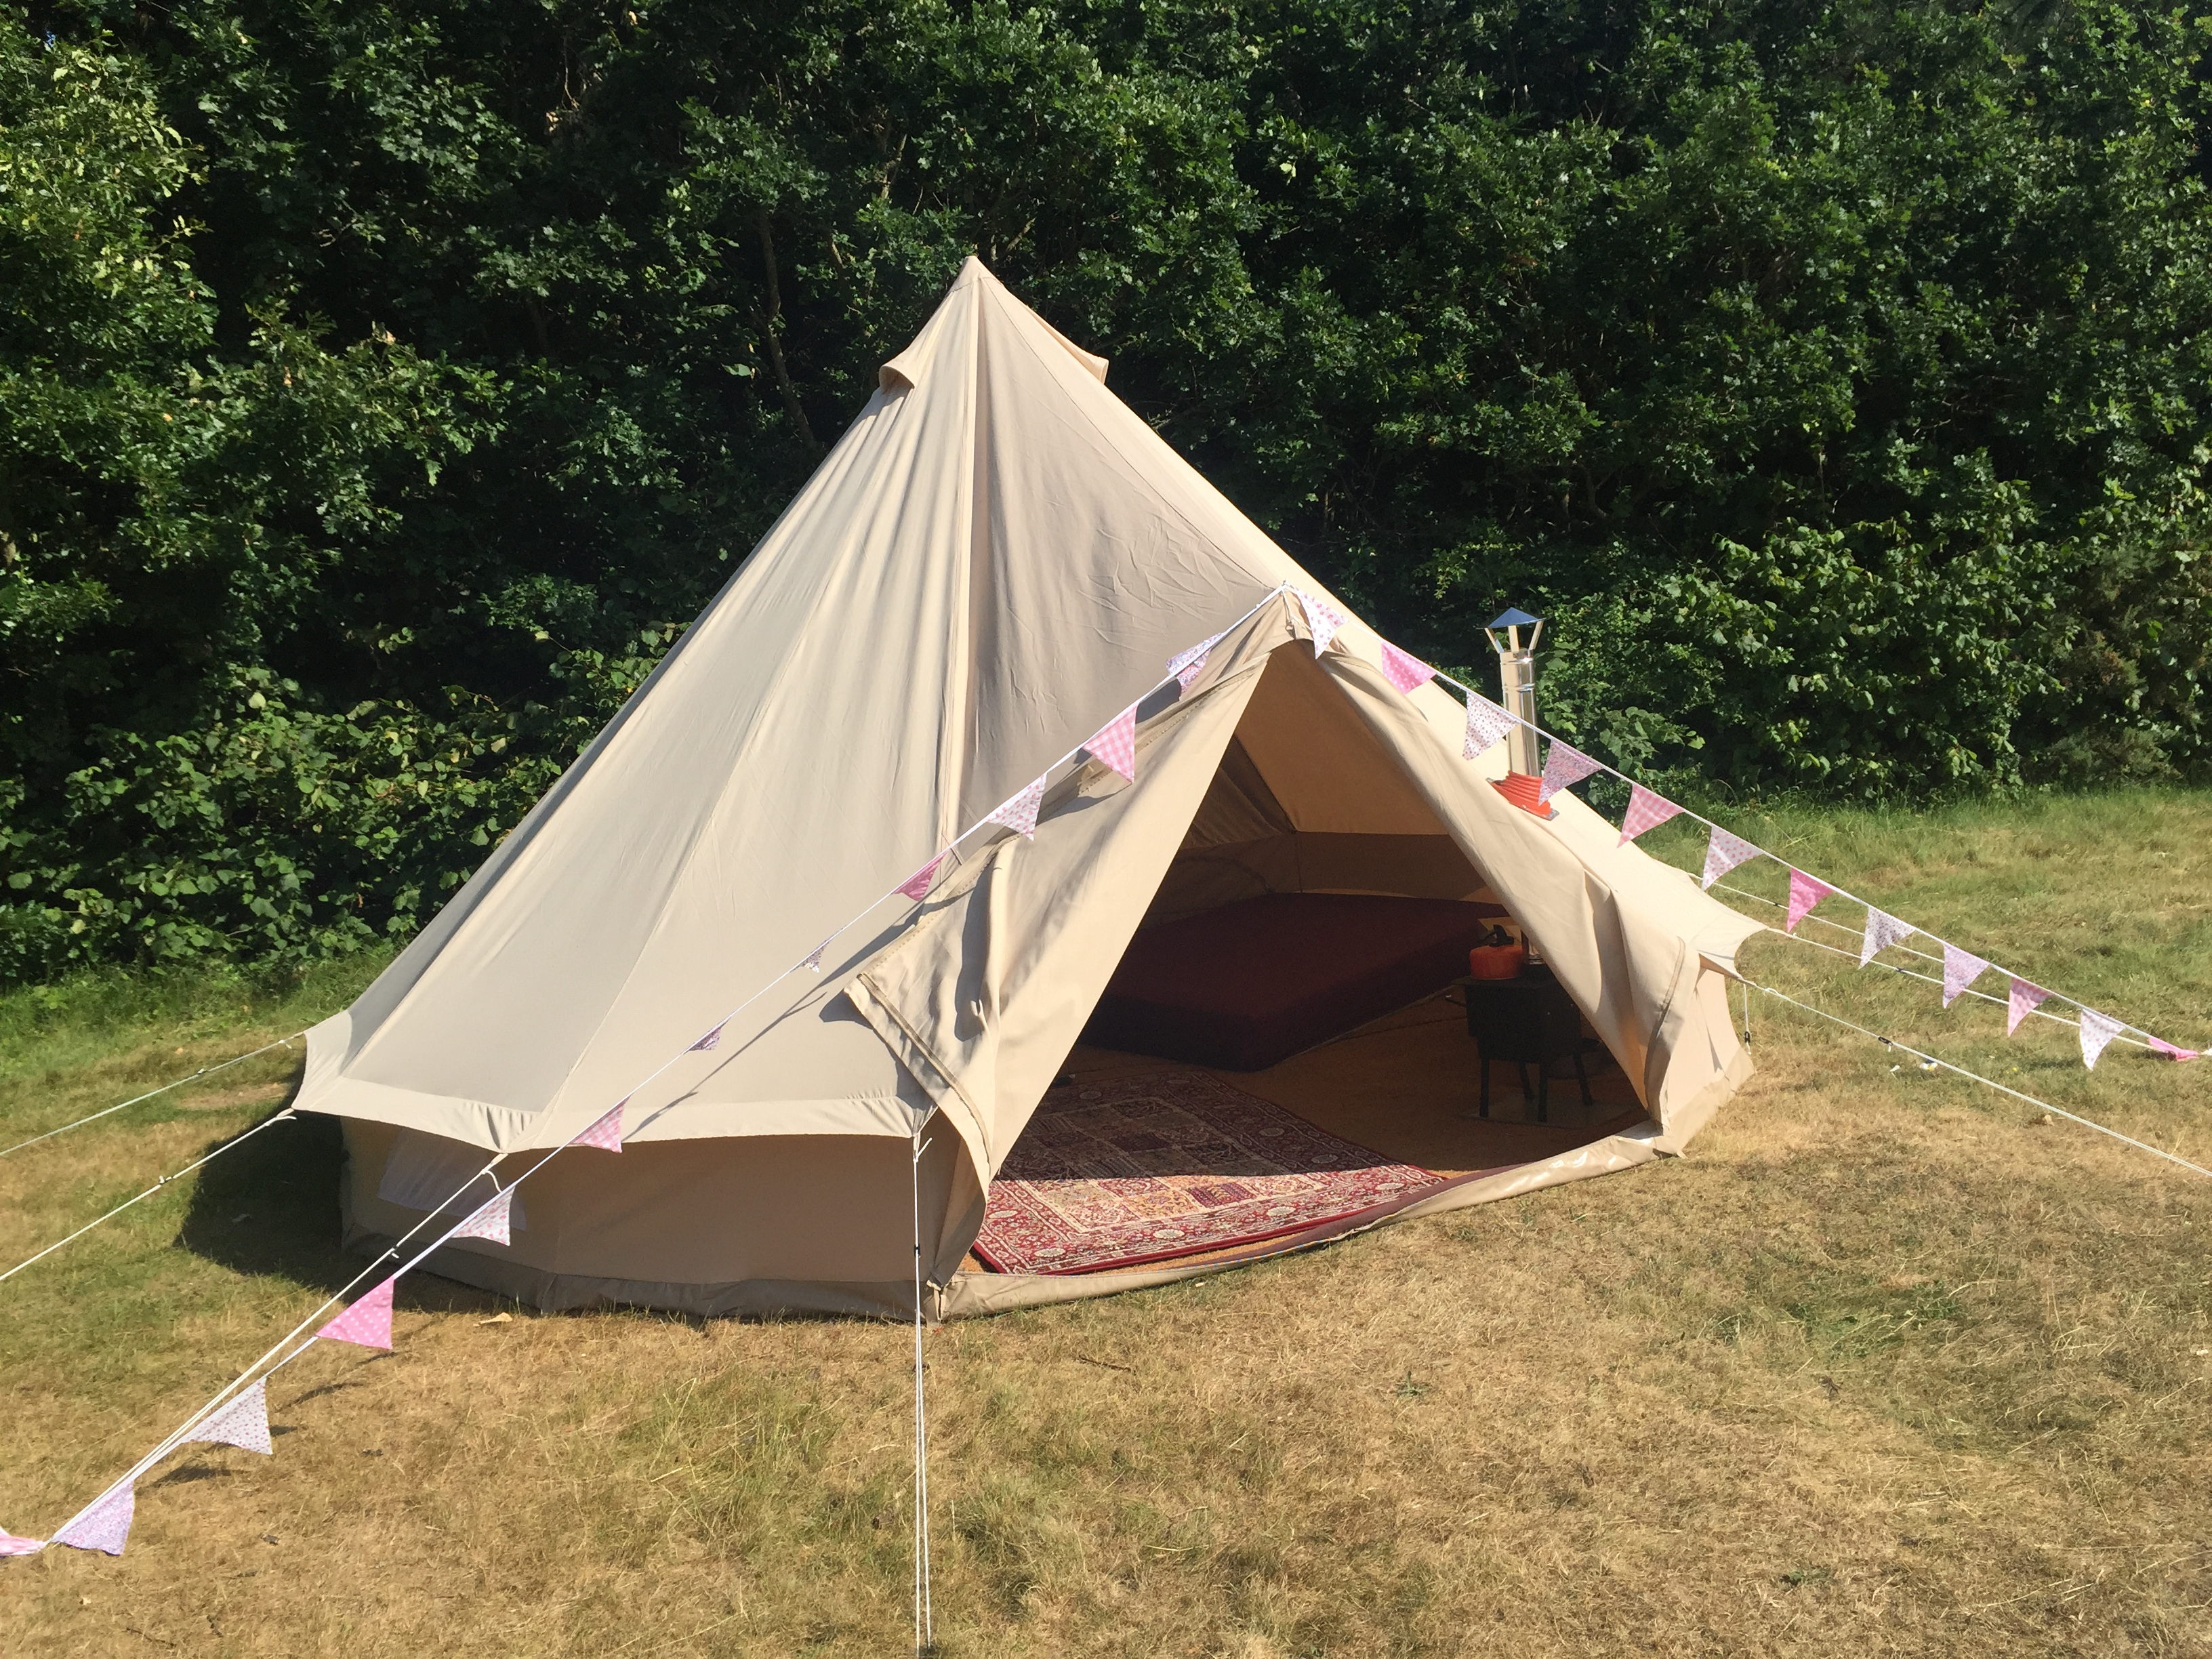 Bell Tent 2 & Cabins - Tents Booking | Bell Tent Glamping